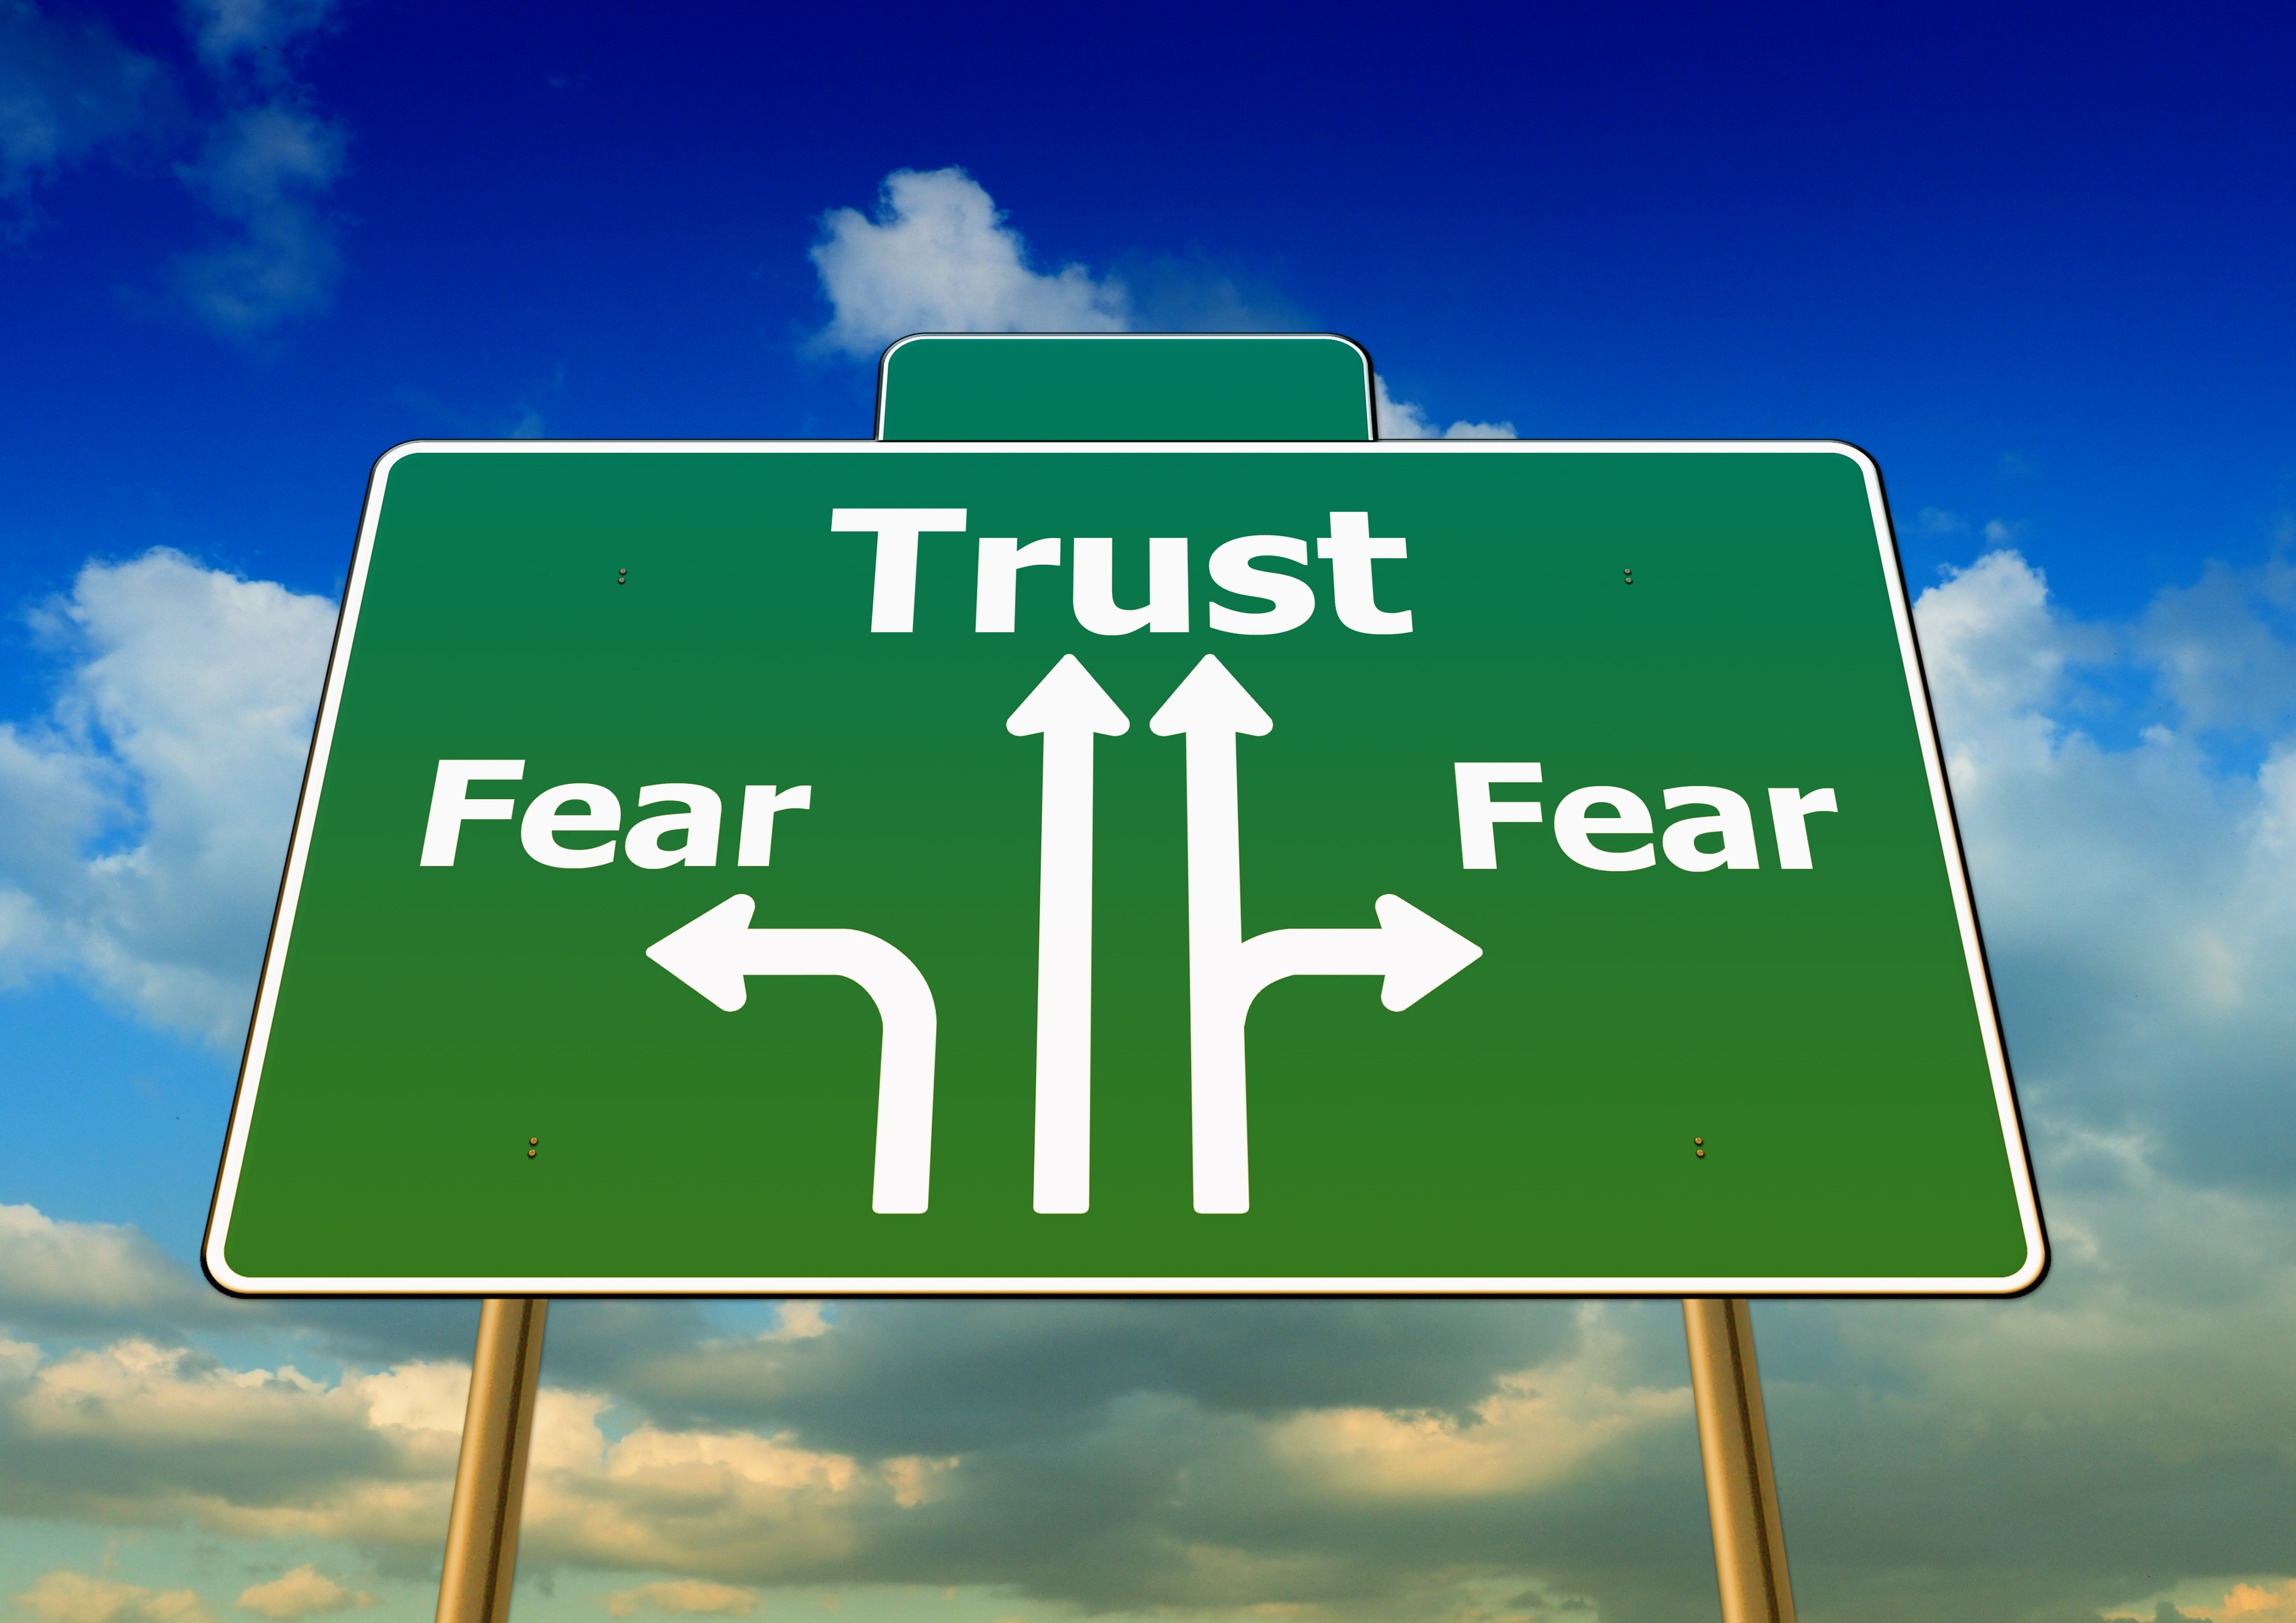 5 signs that you allow fear to control your life